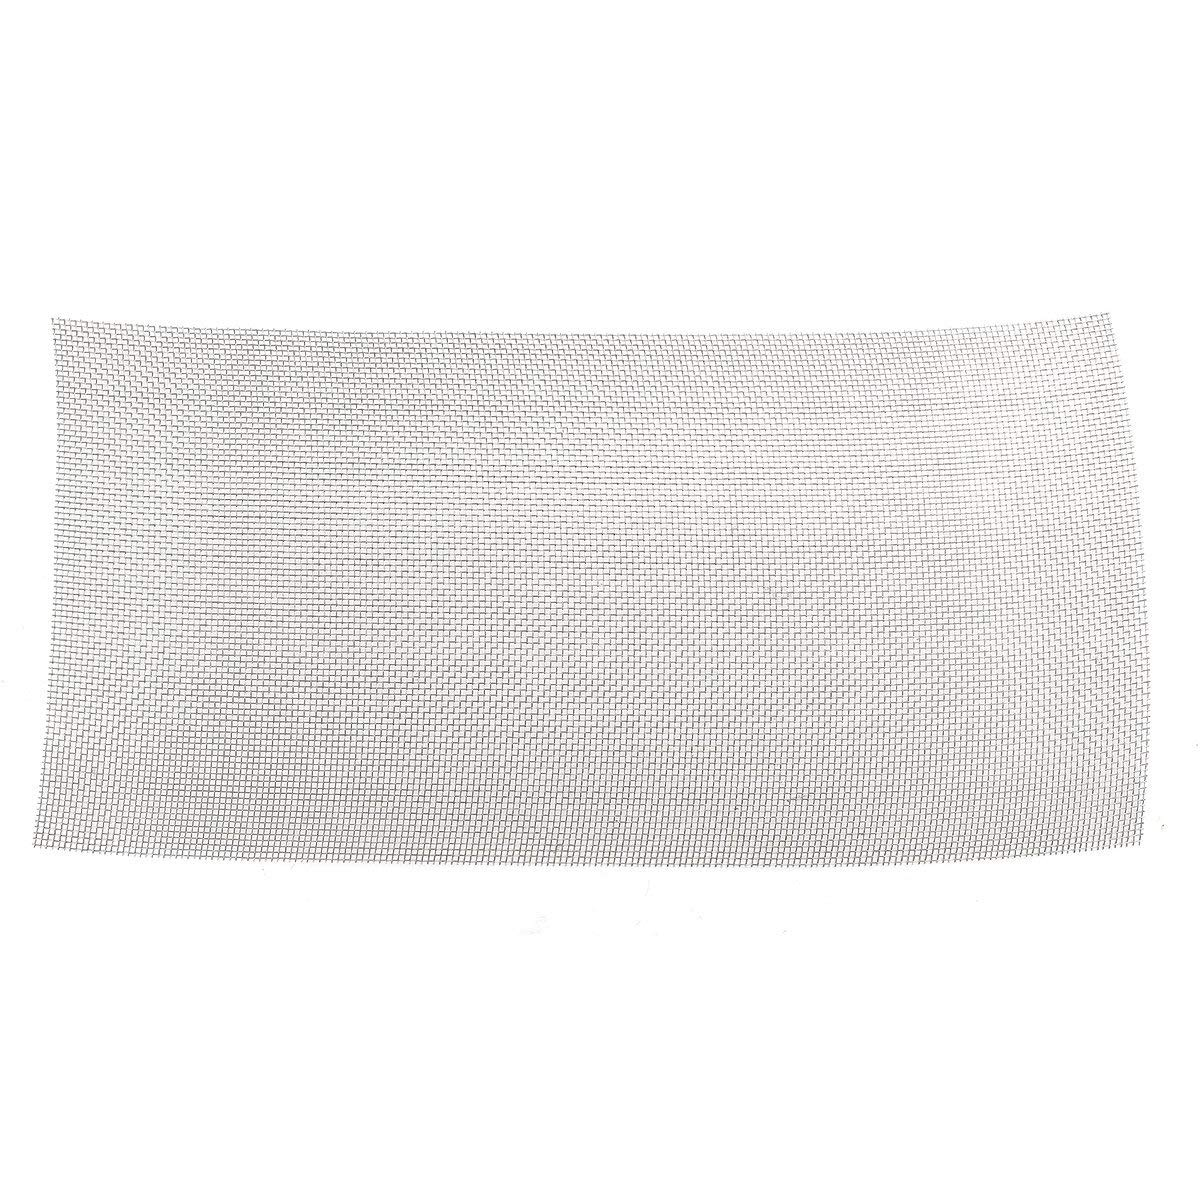 30x60cm Woven Wire 304 Stainless Steel Filtration Grill Sheet Filter 8 - Raw Materials Mesh & Wire Cloth - 1×Stainless Steel 10 Mesh Filtration